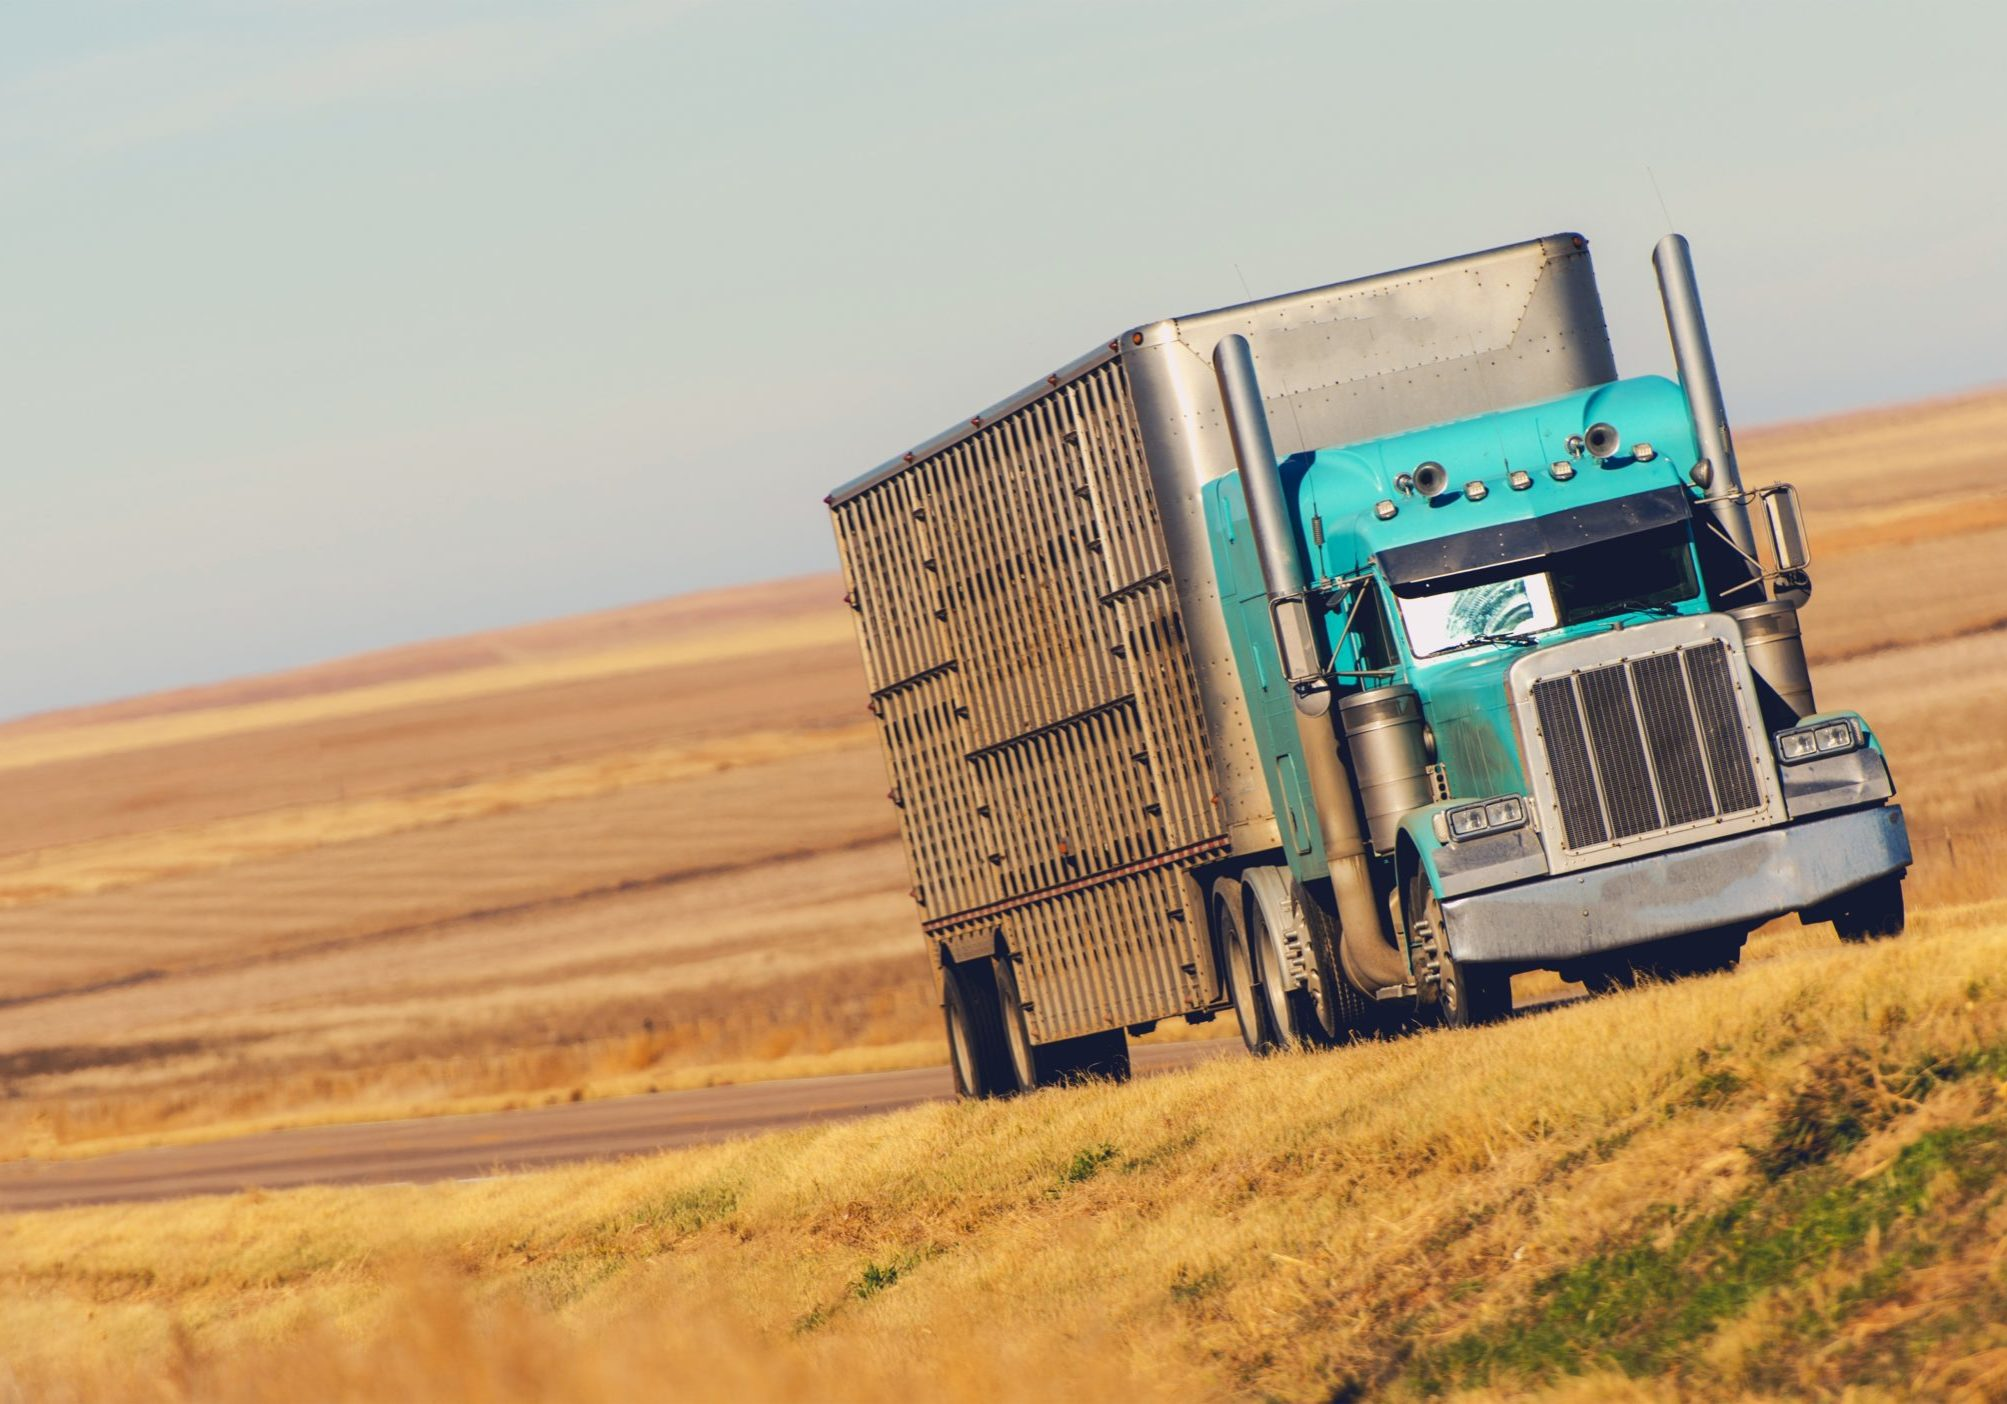 Semi Truck on the American Prairie Road in Colorado. United States of America. Trucking and Shipping Theme.